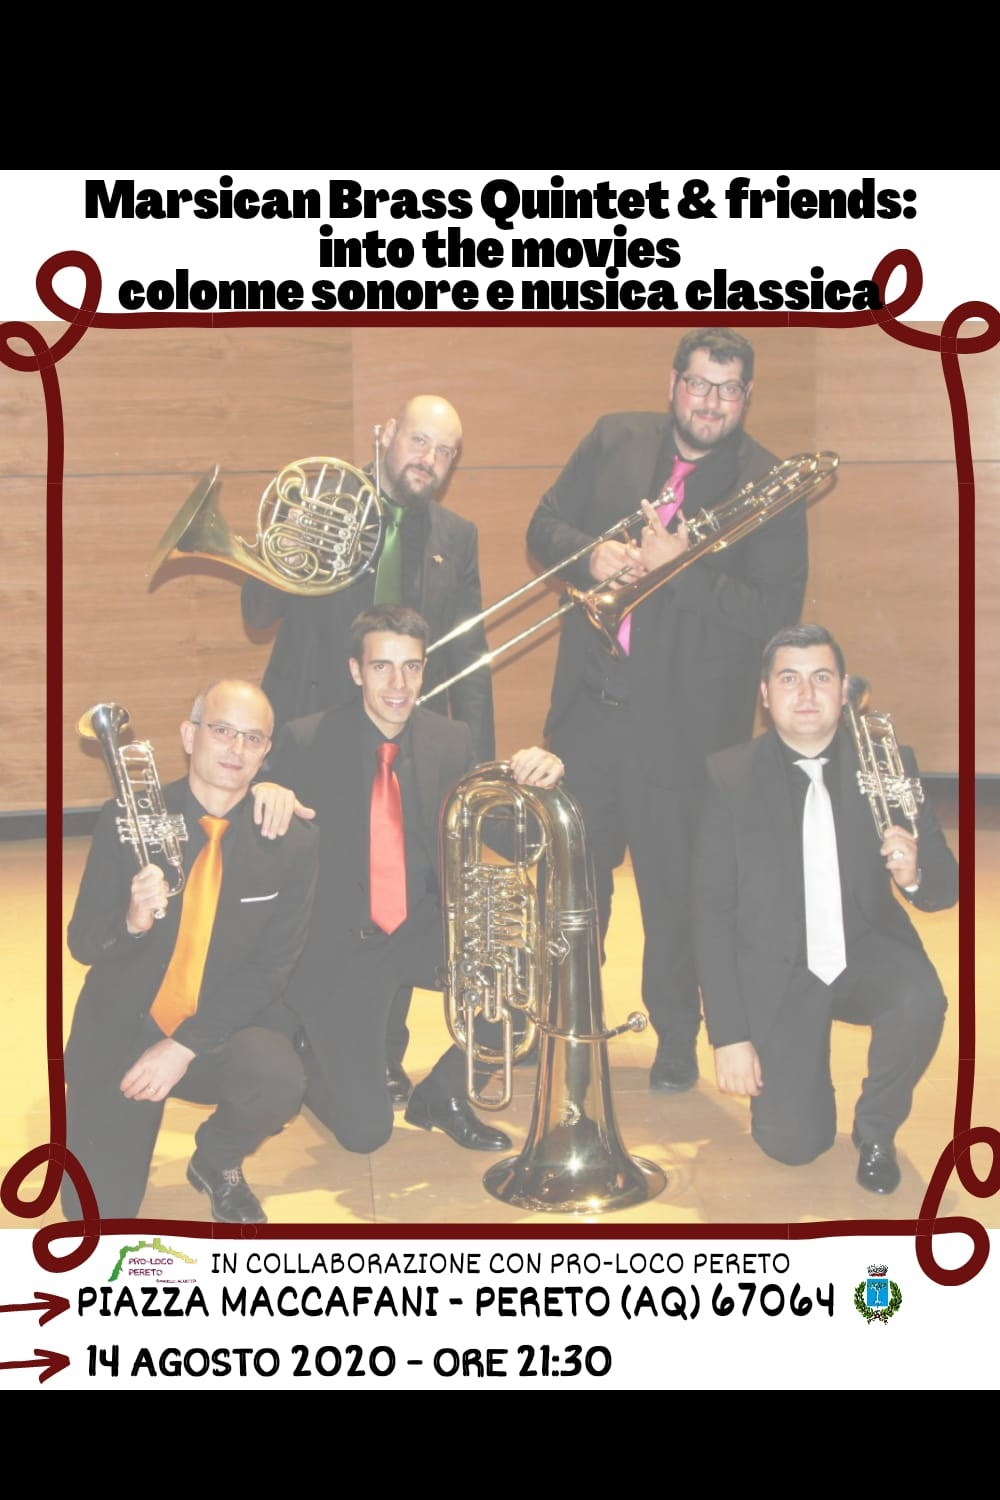 Marsican Brass Quintet & Friends: Into the movies